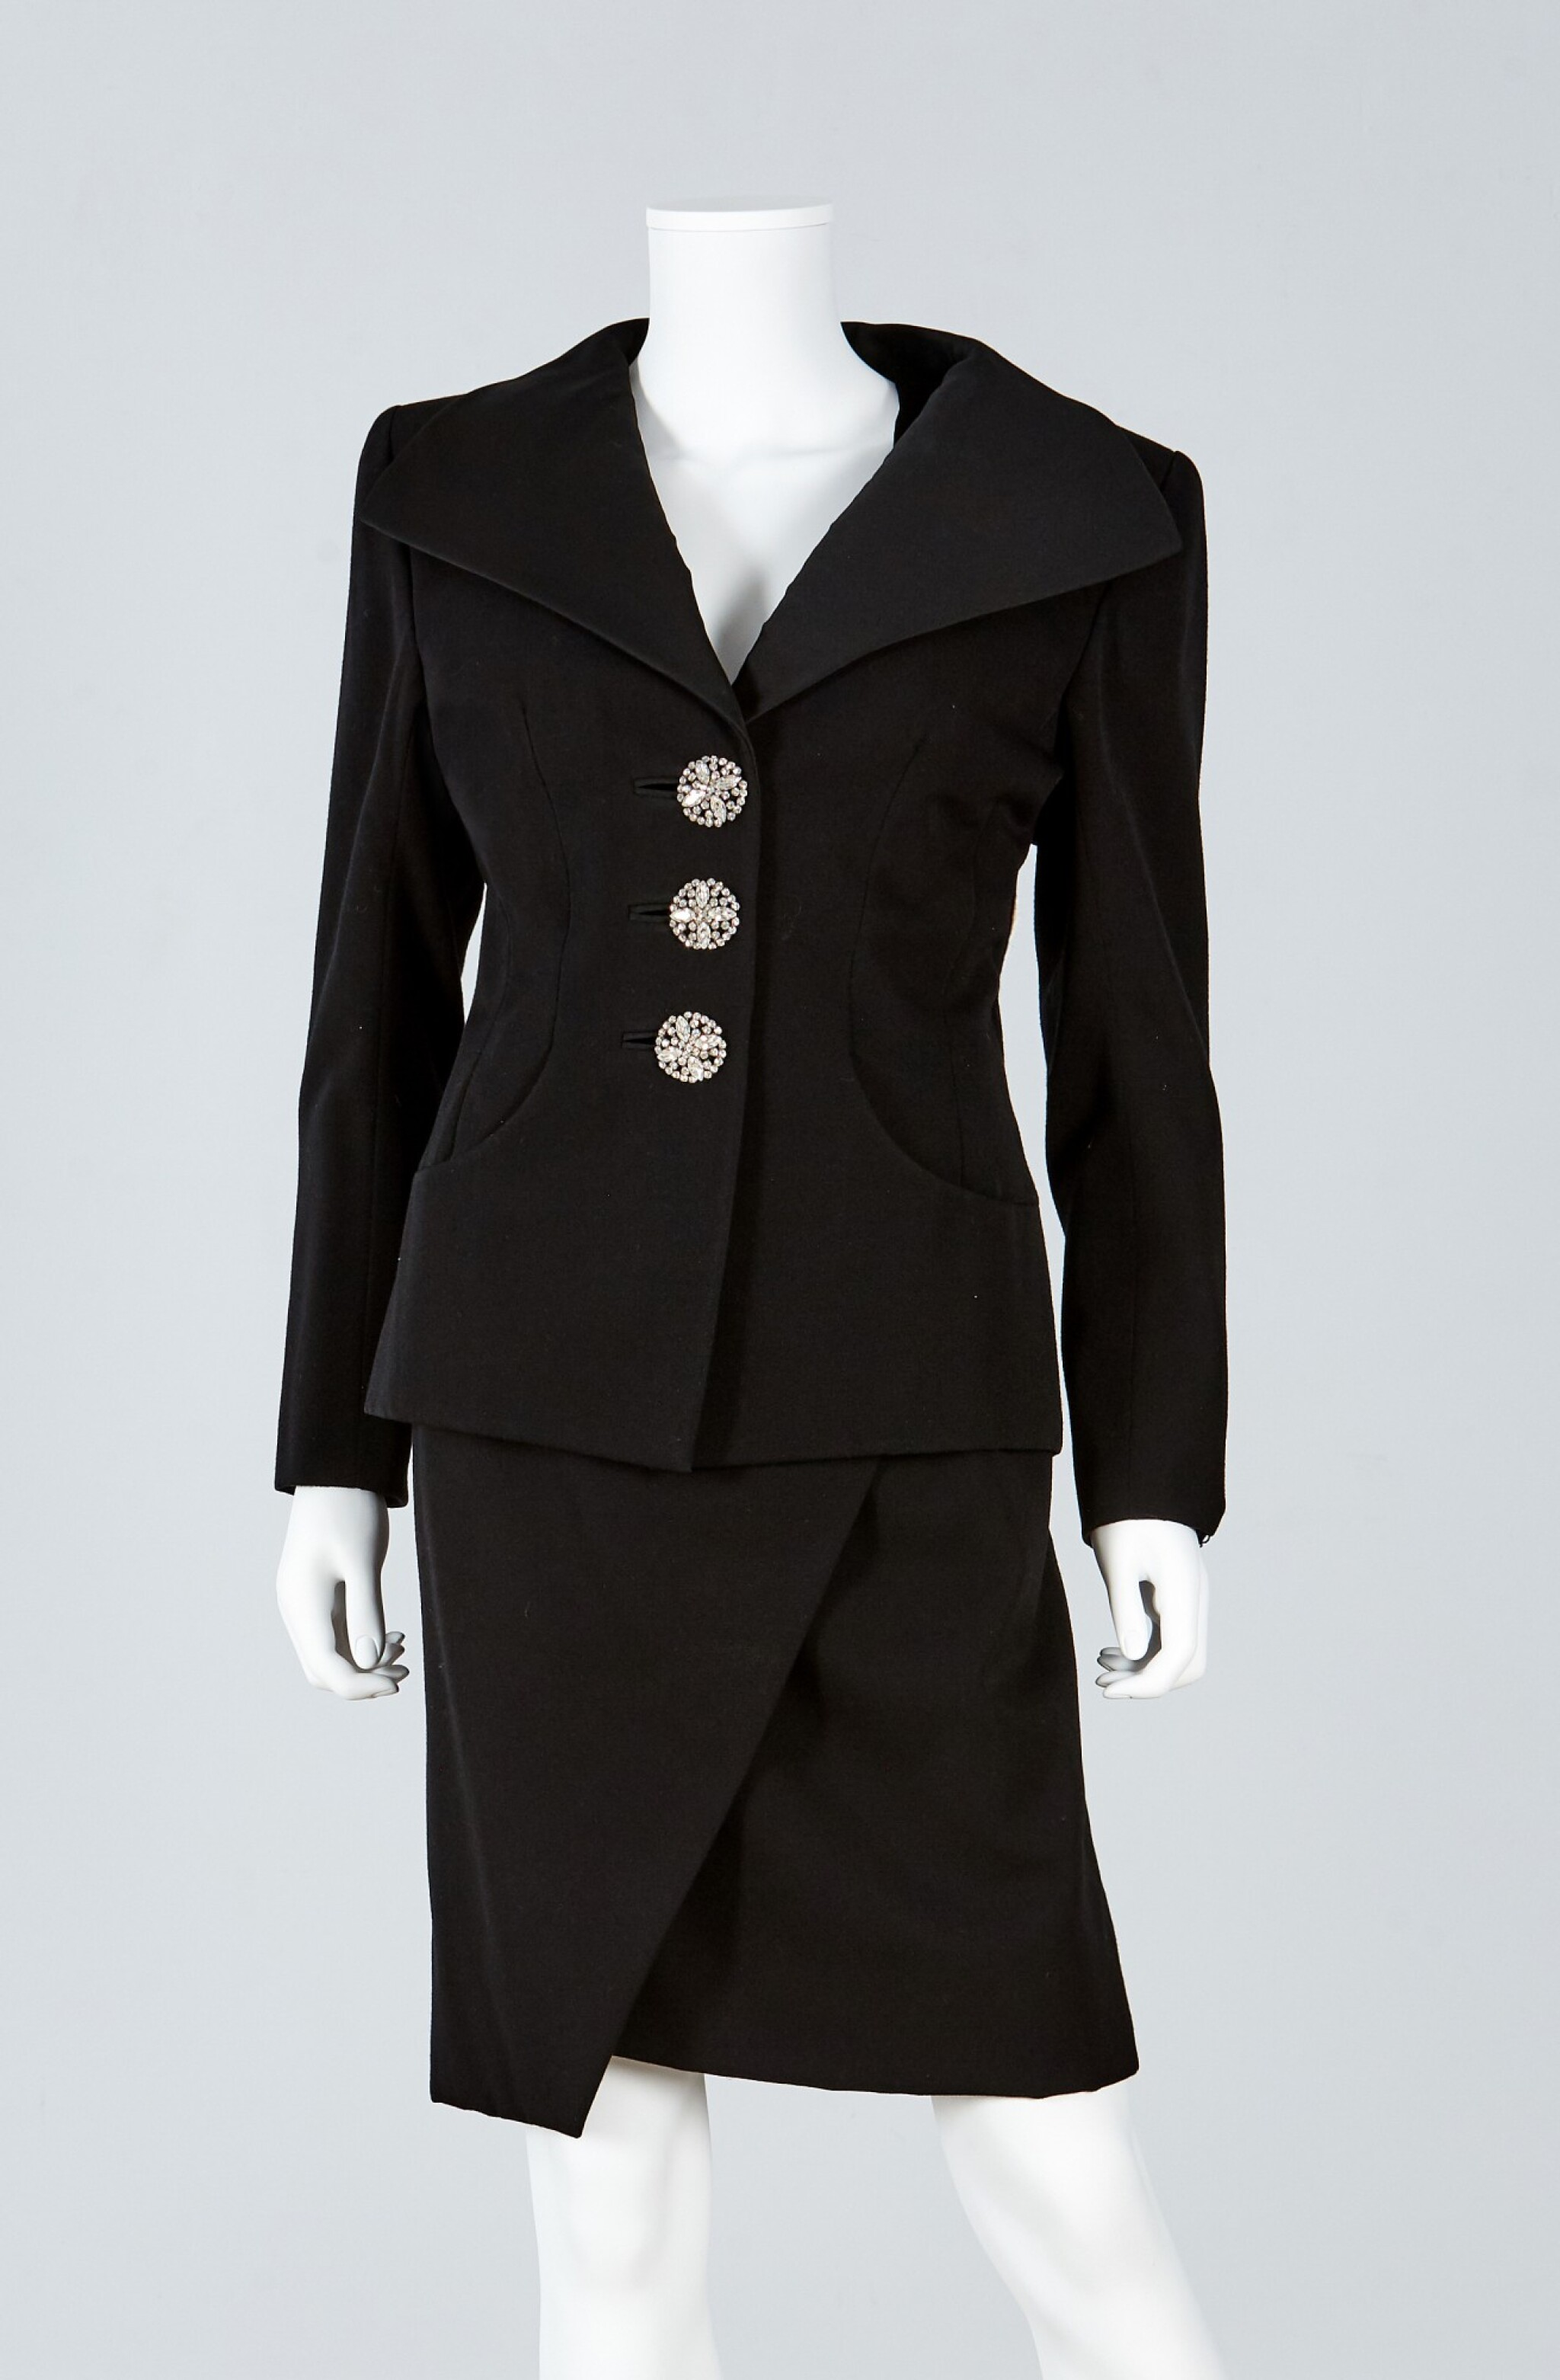 View 1 of Lot 39. Haute Couture Suit Ensemble, Fall/Winter Collection, 1989.